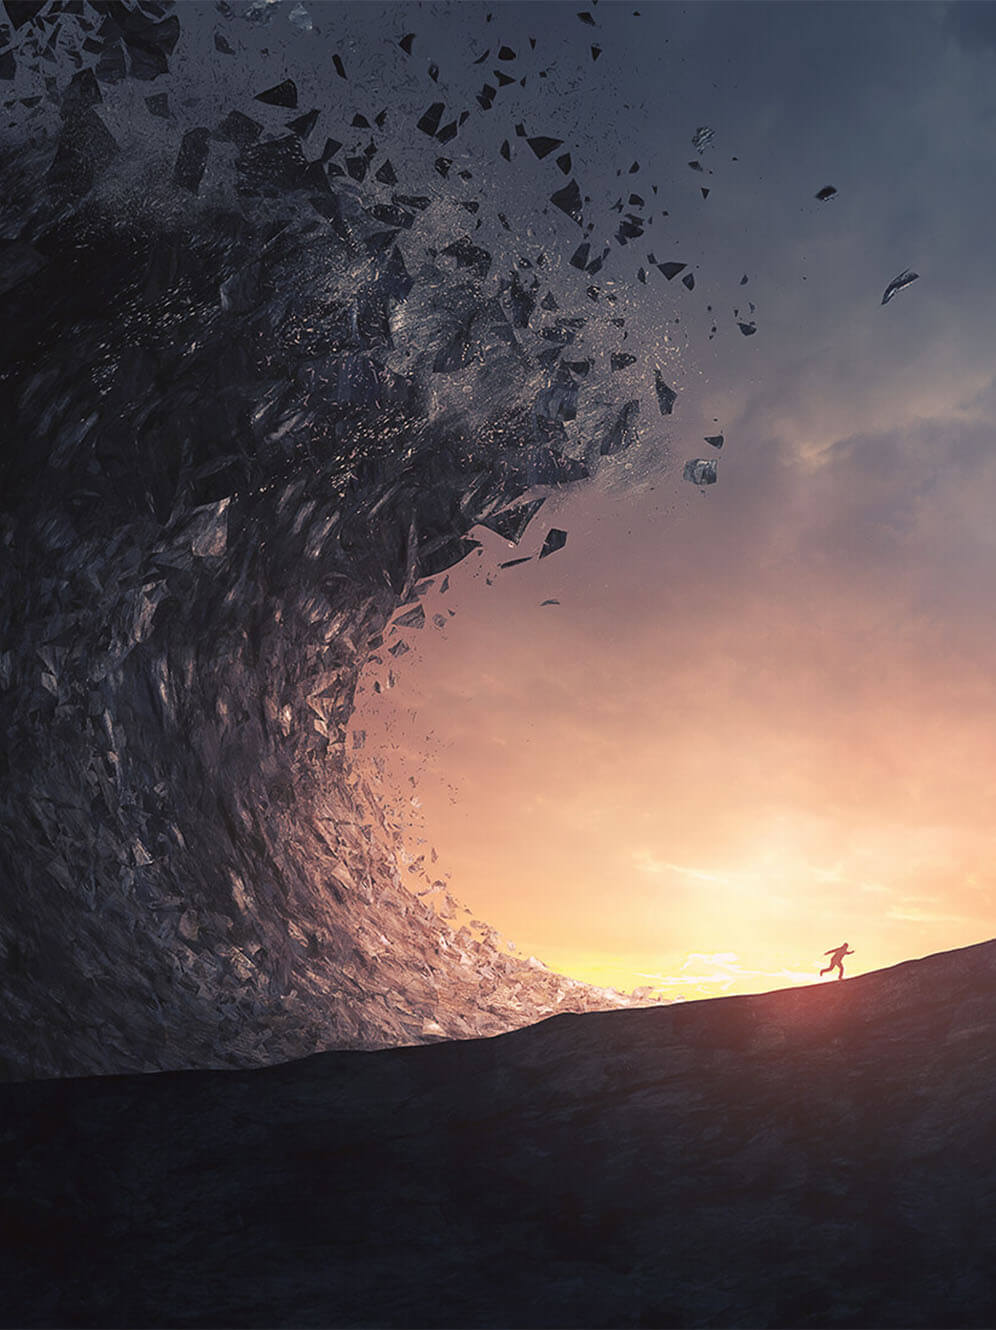 Crashing wave over a man running into the sunset